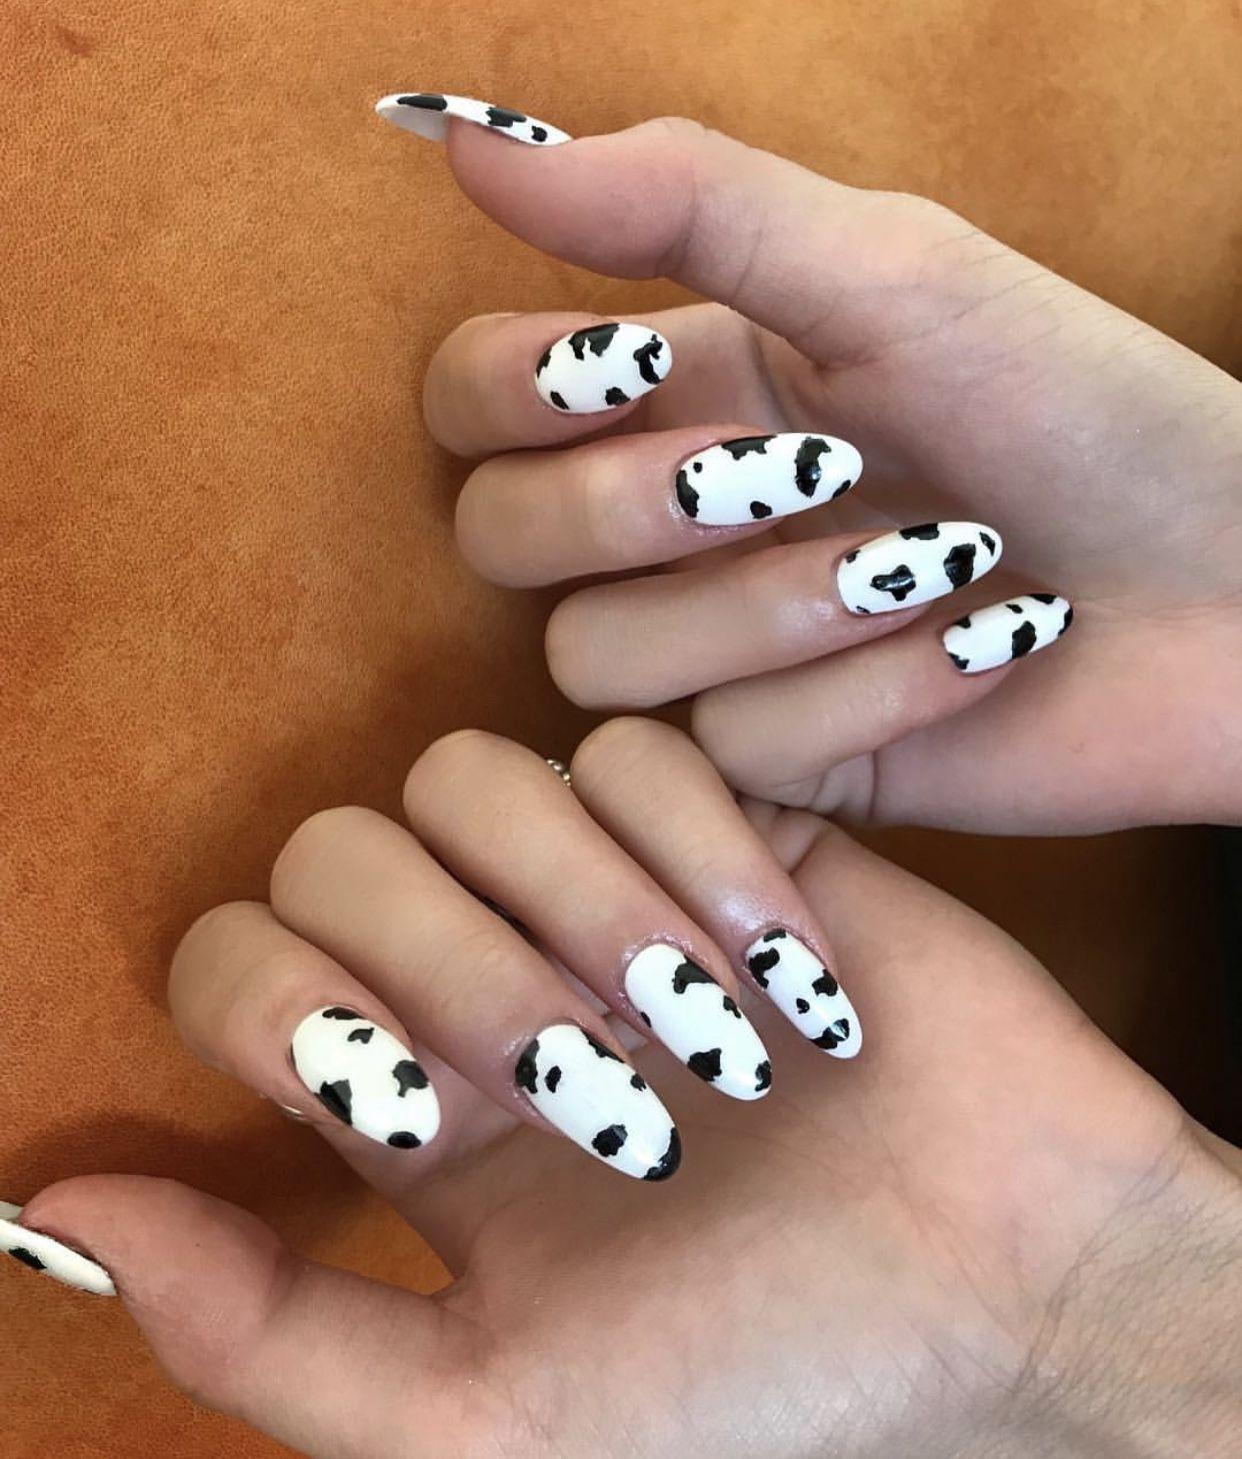 Cow Print Oval Almond Shaped Acrylic Nails Nailideas Cow Nails Oval Acrylic Nails Almond Acrylic Nails